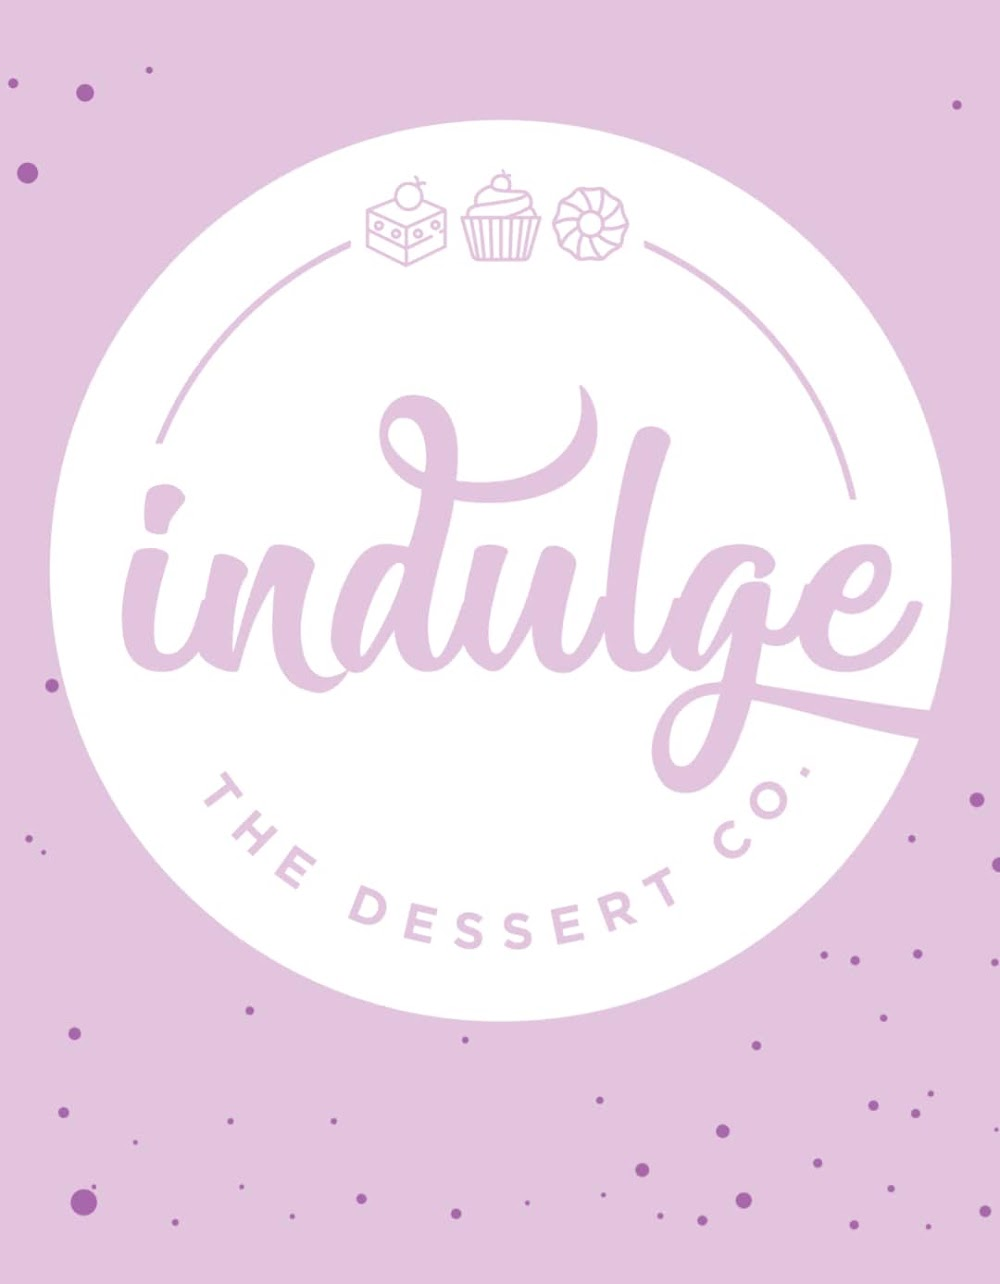 Indulge - The Dessert Co menu 4